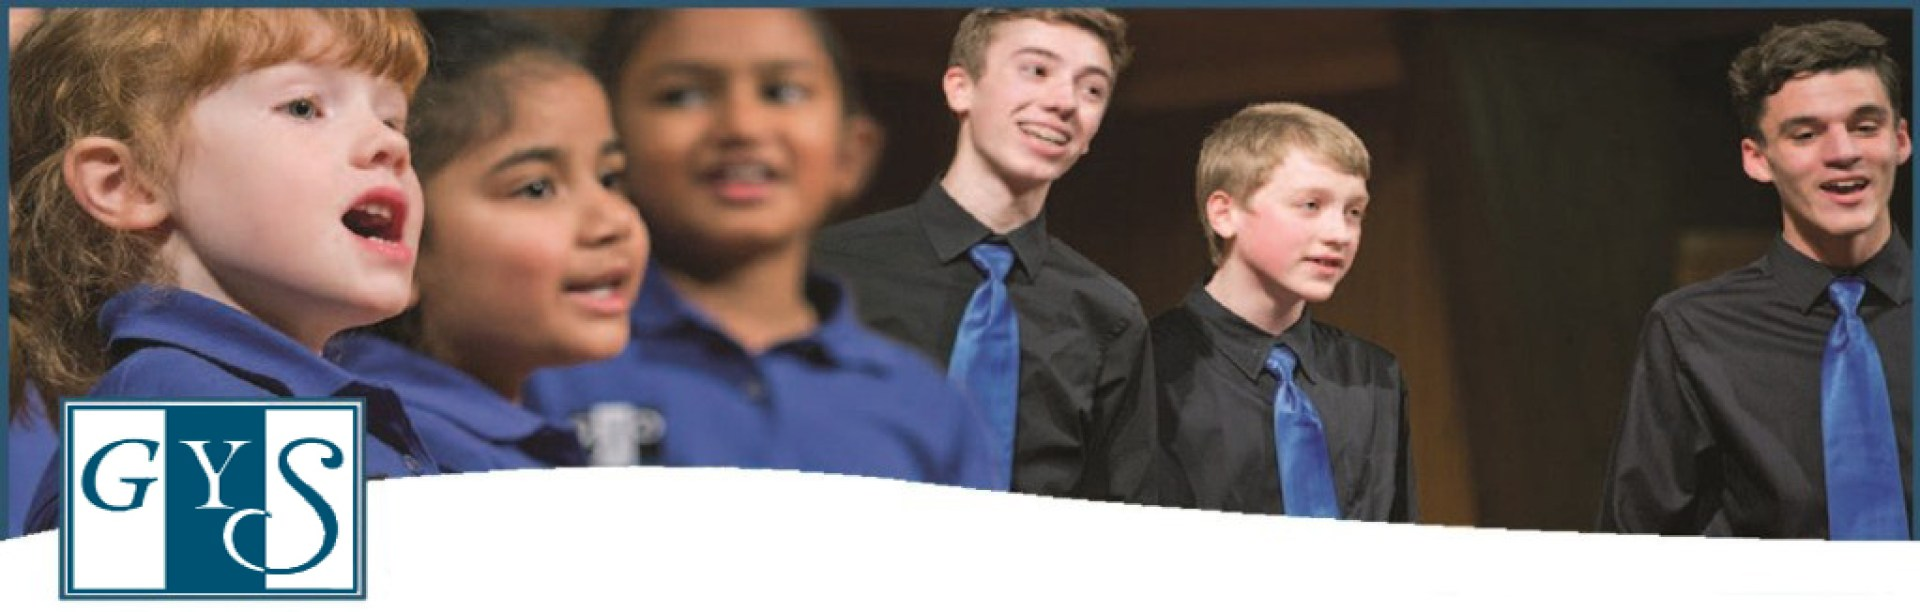 GuelphYouthSingers_banner